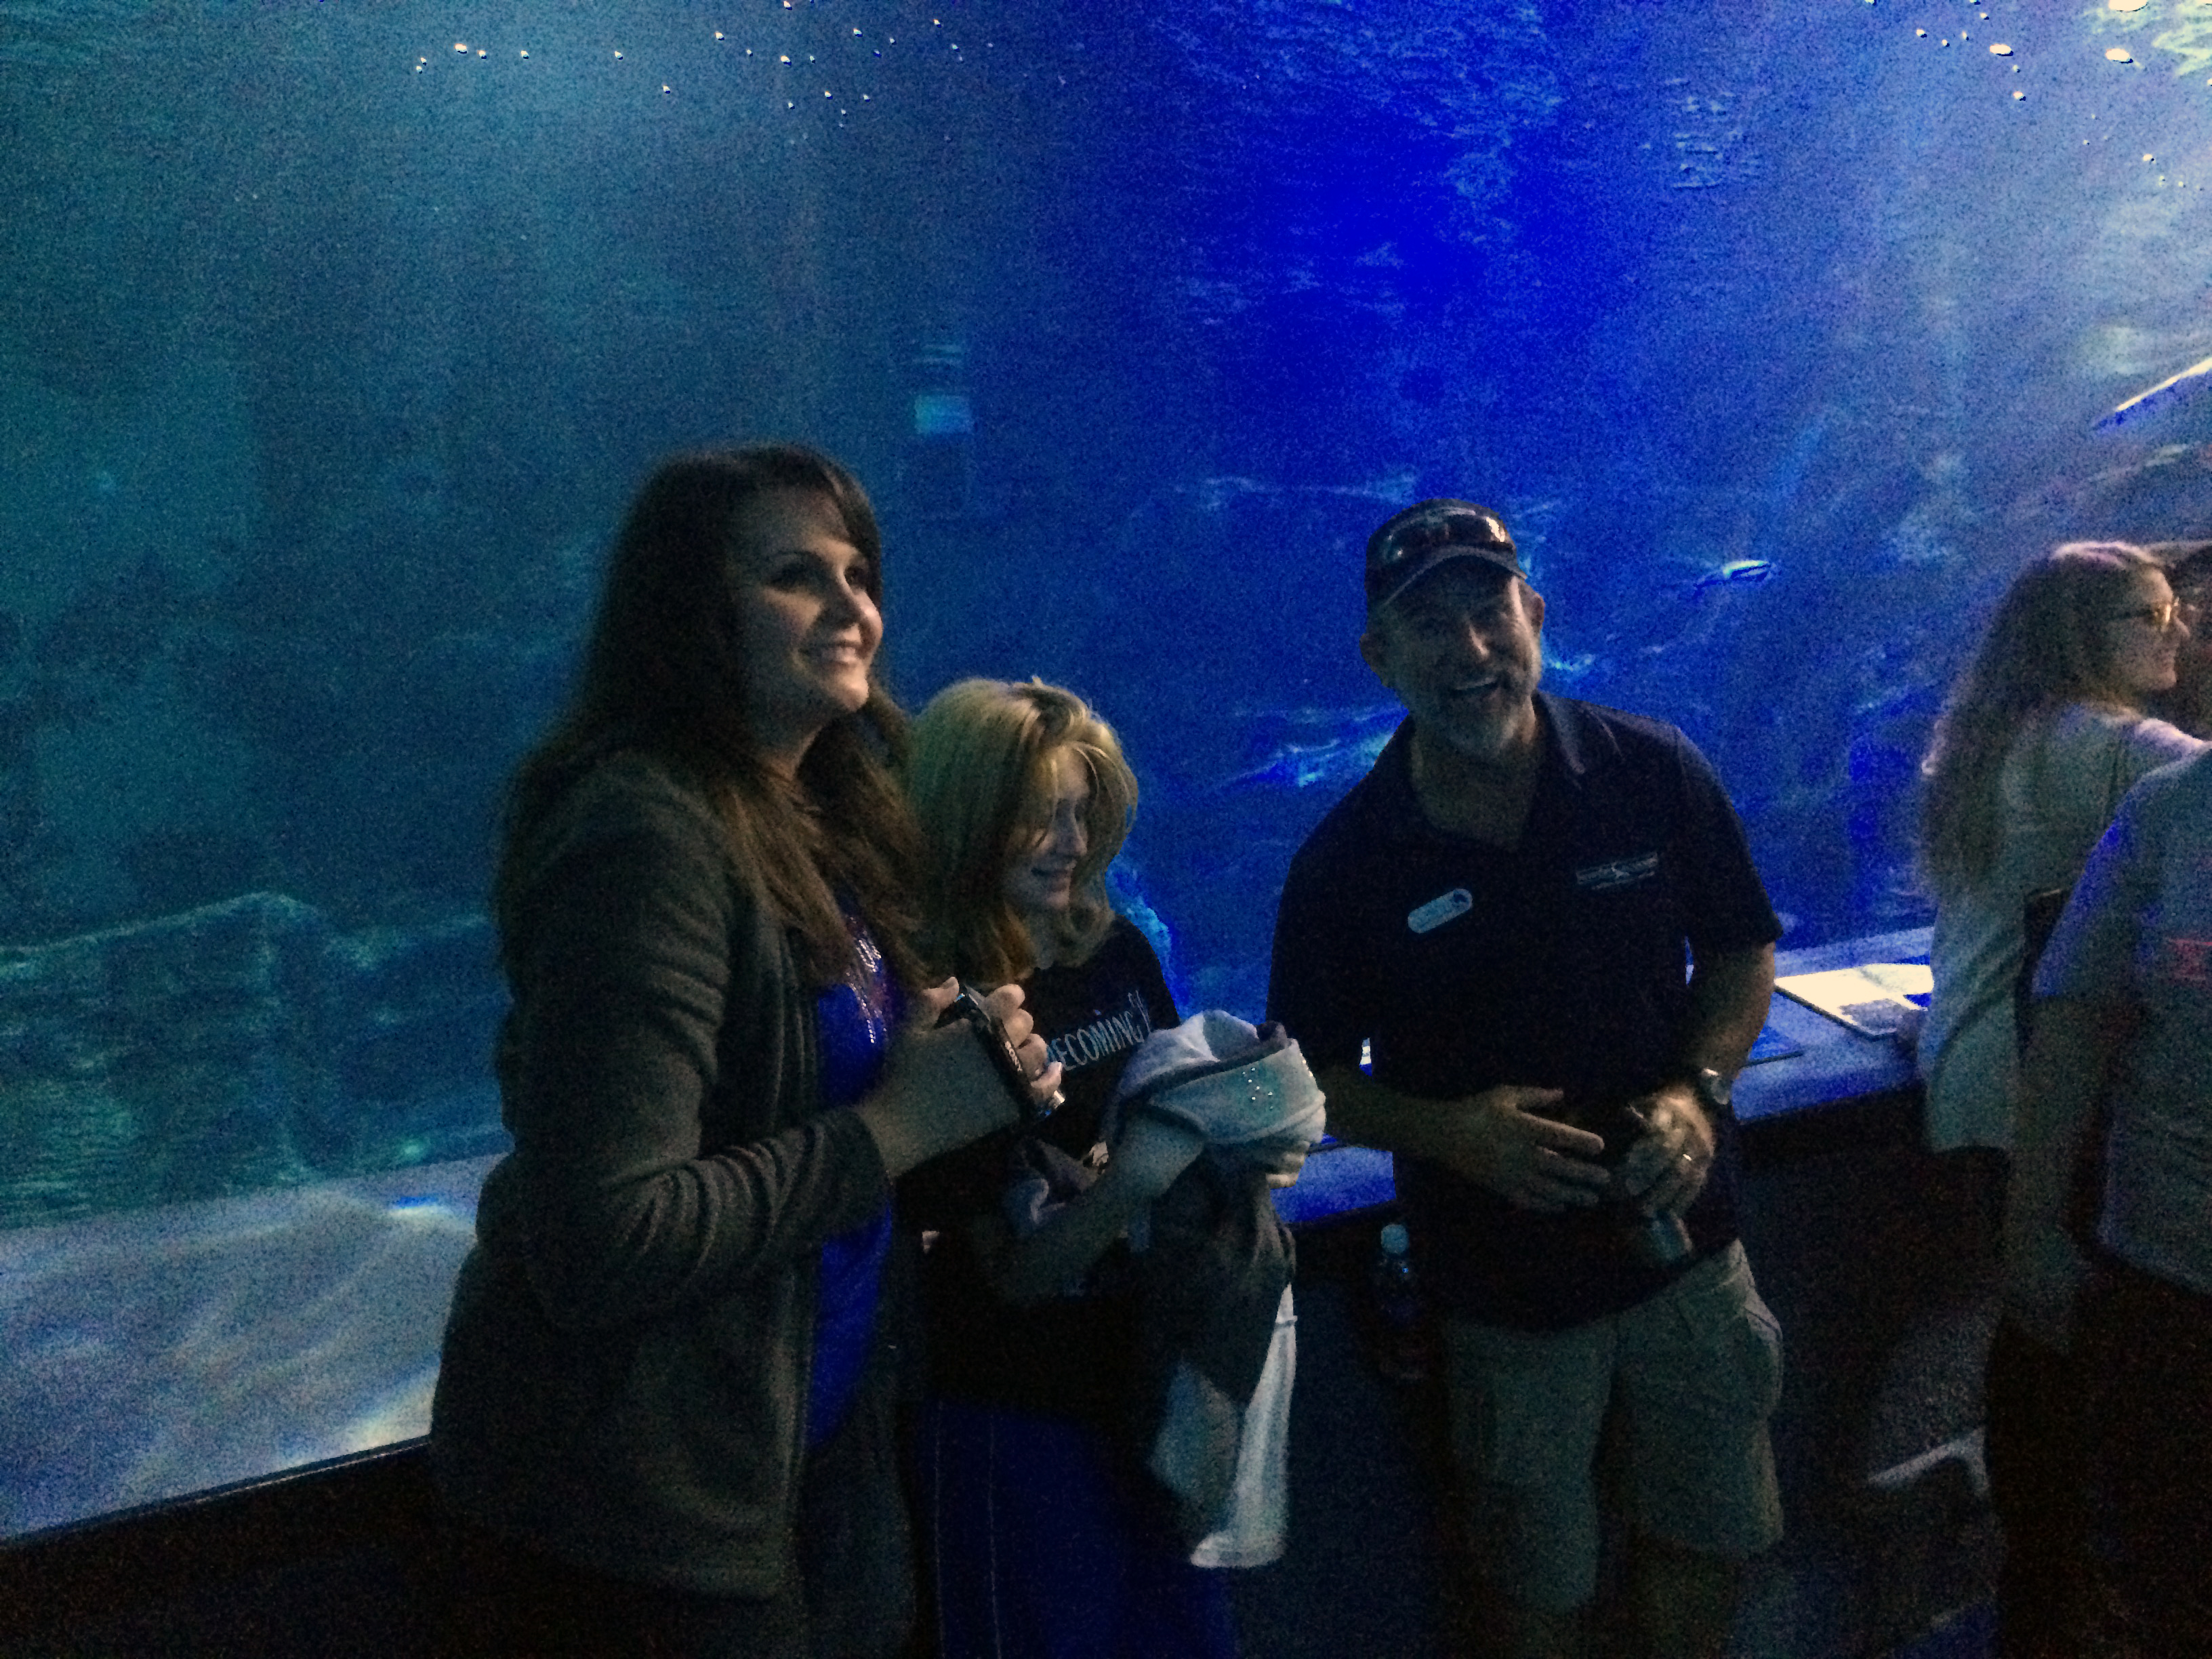 Zoologist For A Day Downtown Aquarium Arion And Destiny With Ric In The Shark